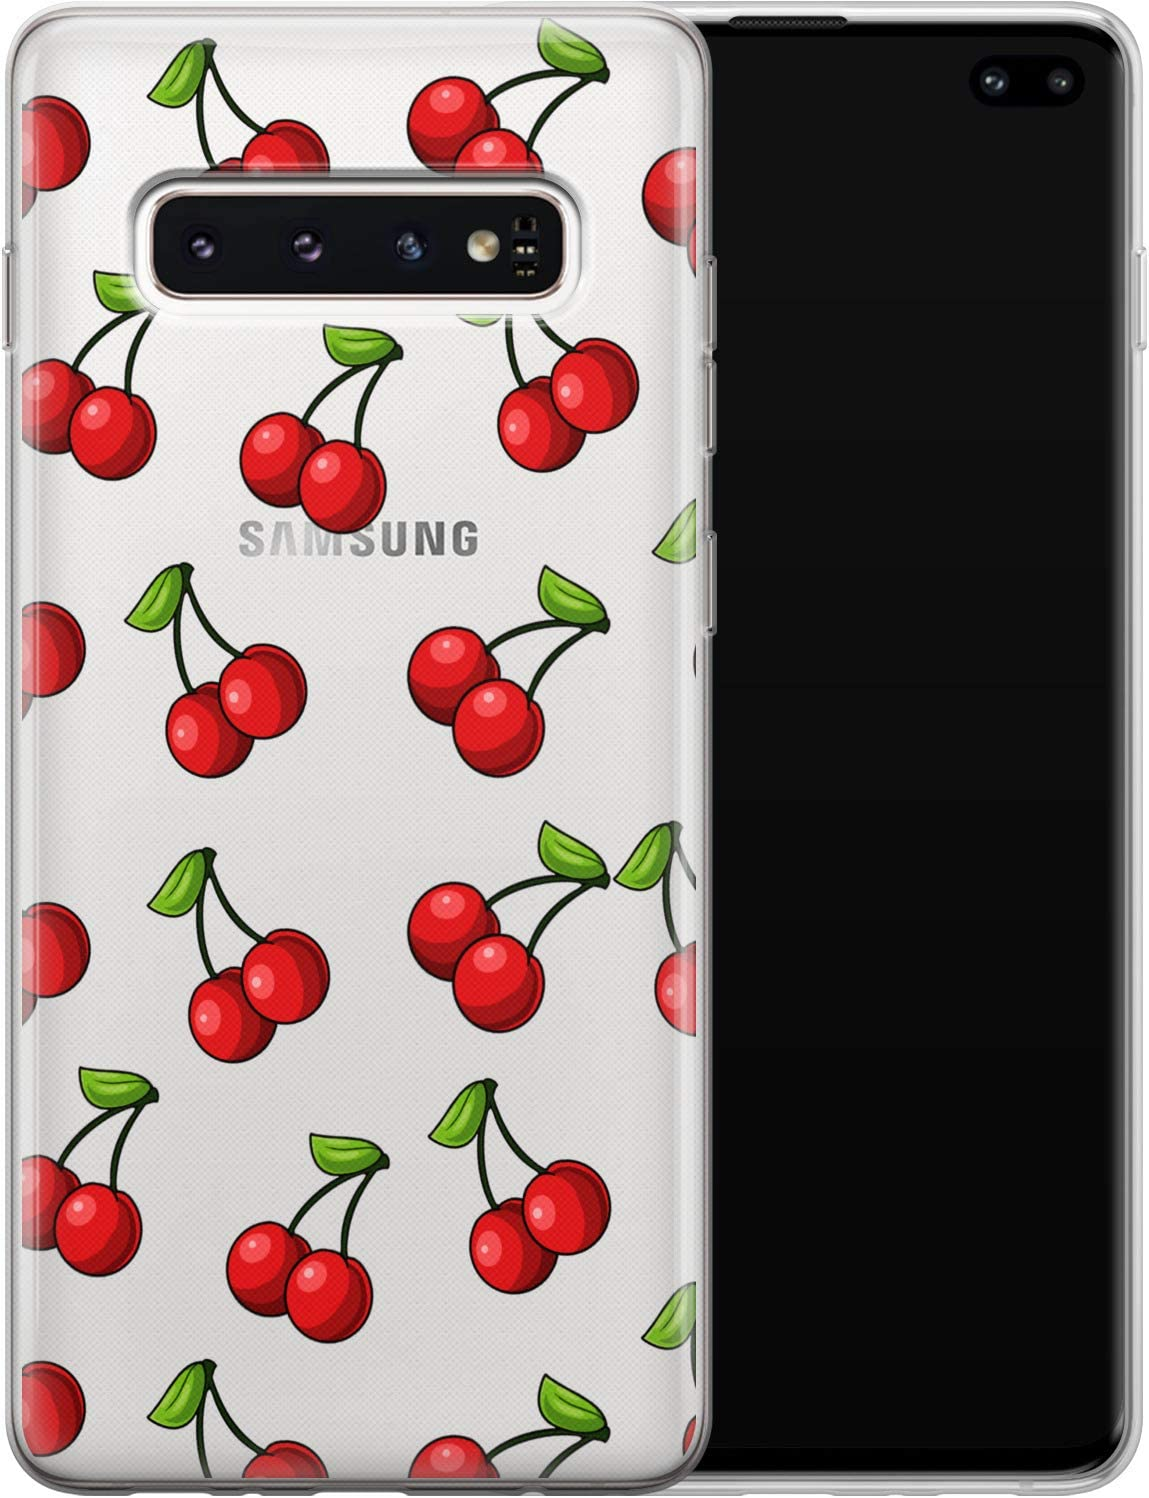 Vonna Phone Case Replacement for Samsung Galaxy S21 S20 Plus S10 Note 20 Ultra 5G S9 S8 Cherry Soft Red Lovely Tropic Food Art Fruit Summer Smooth Print Design Flexible Silicone Cover Cute Lux a056